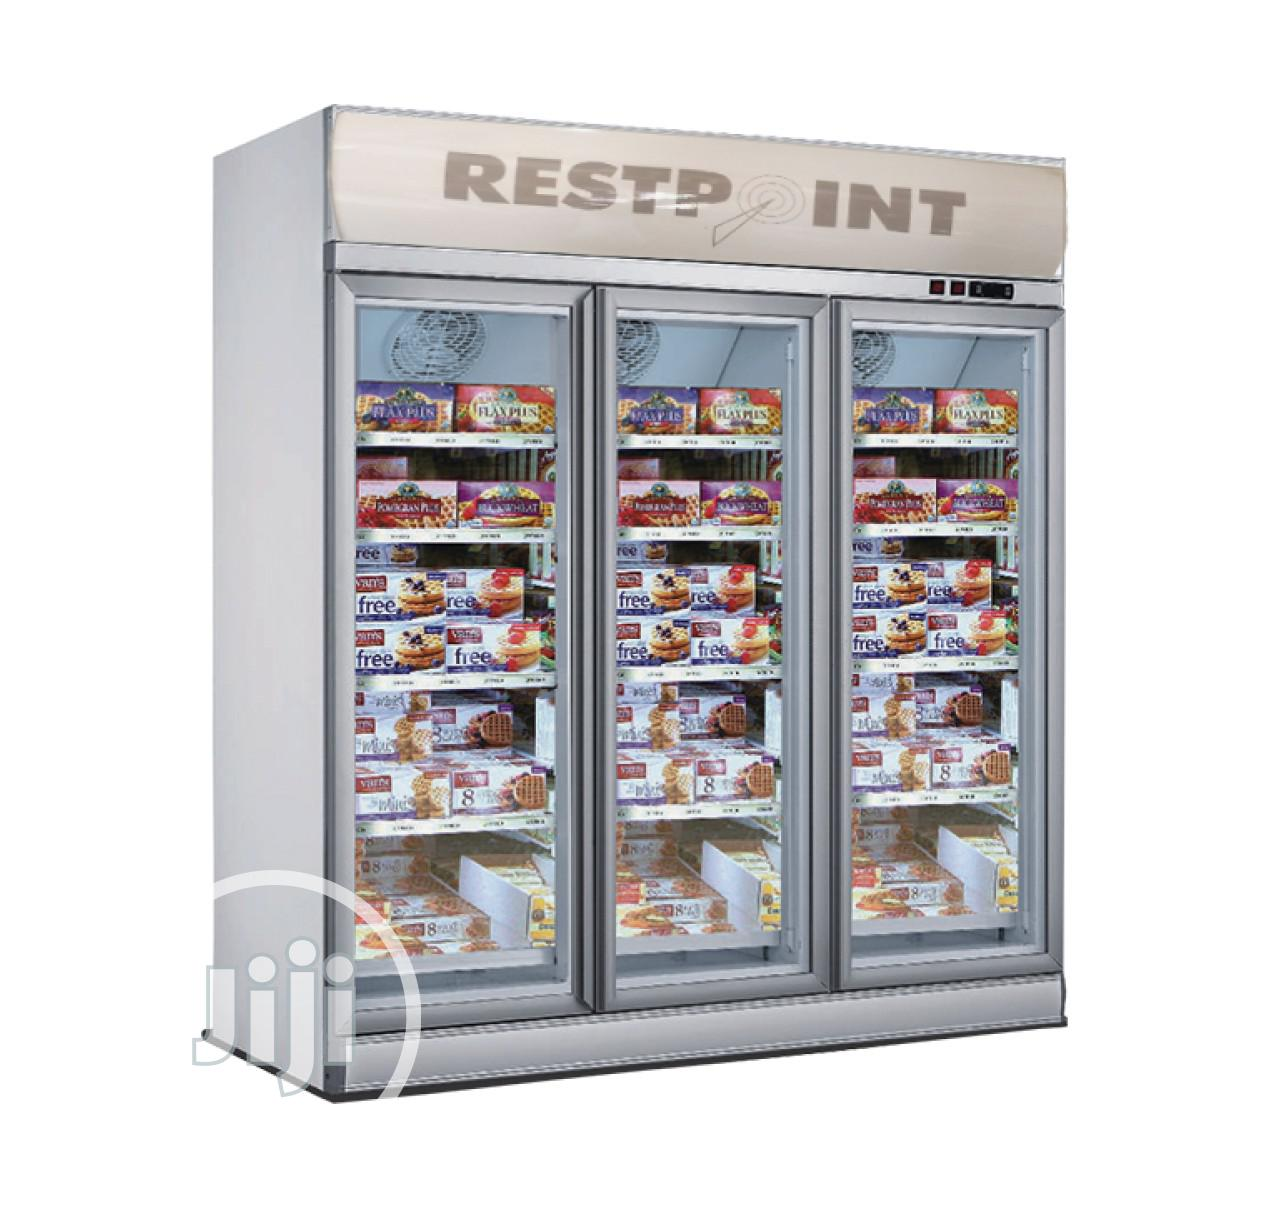 1450L Top Mounted Freezer Three Door RC1500DL -Restpoint J11